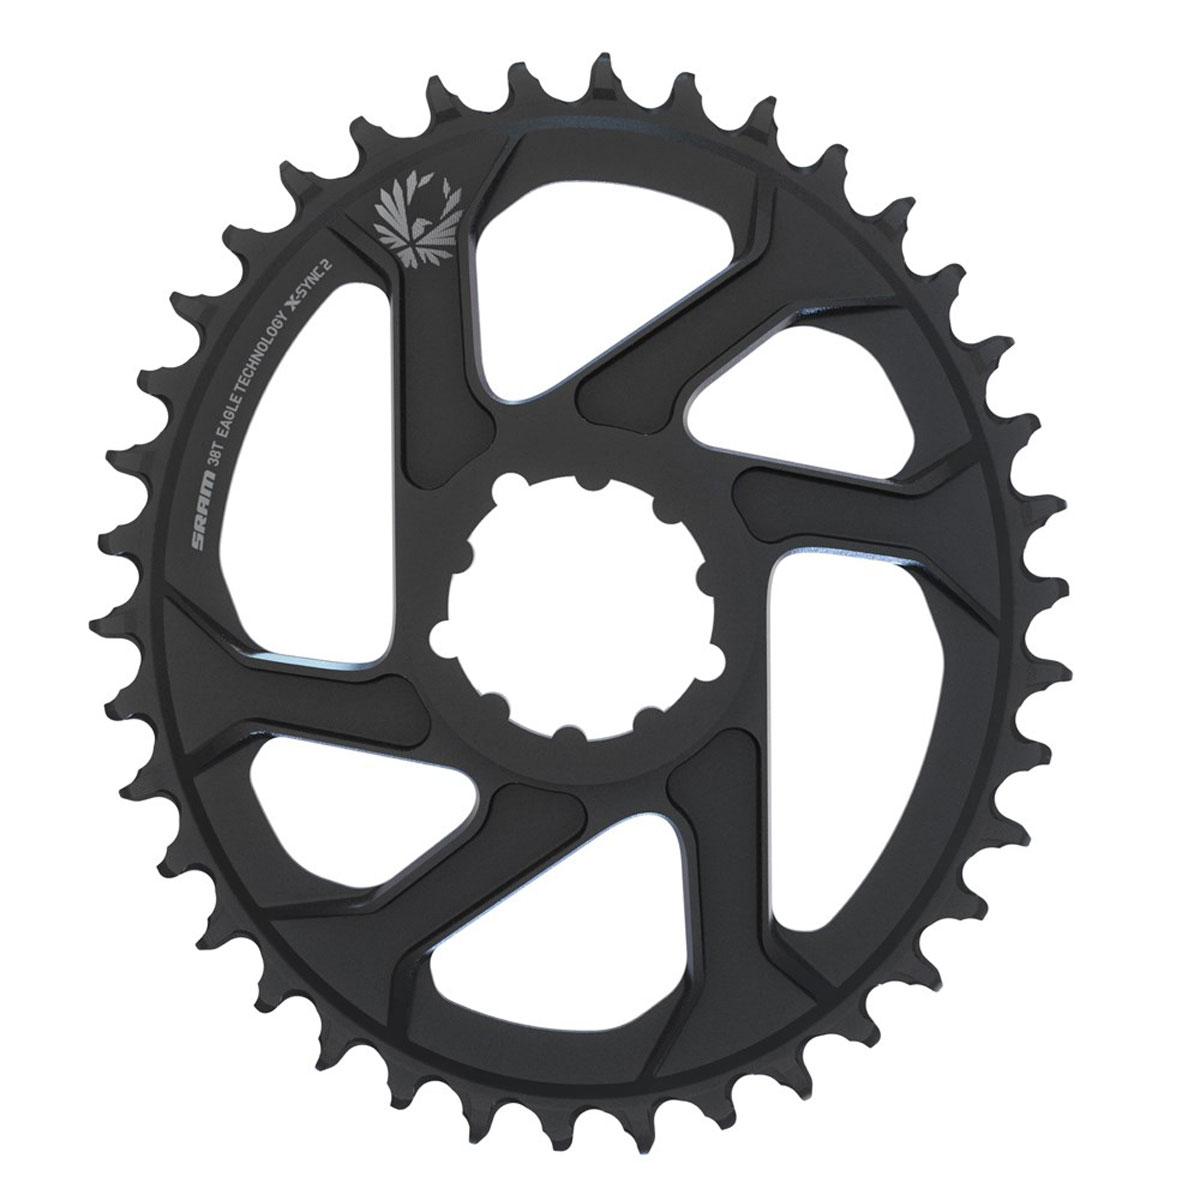 X-SYNC 2 Eagle™ Oval Chainring Direct Mount